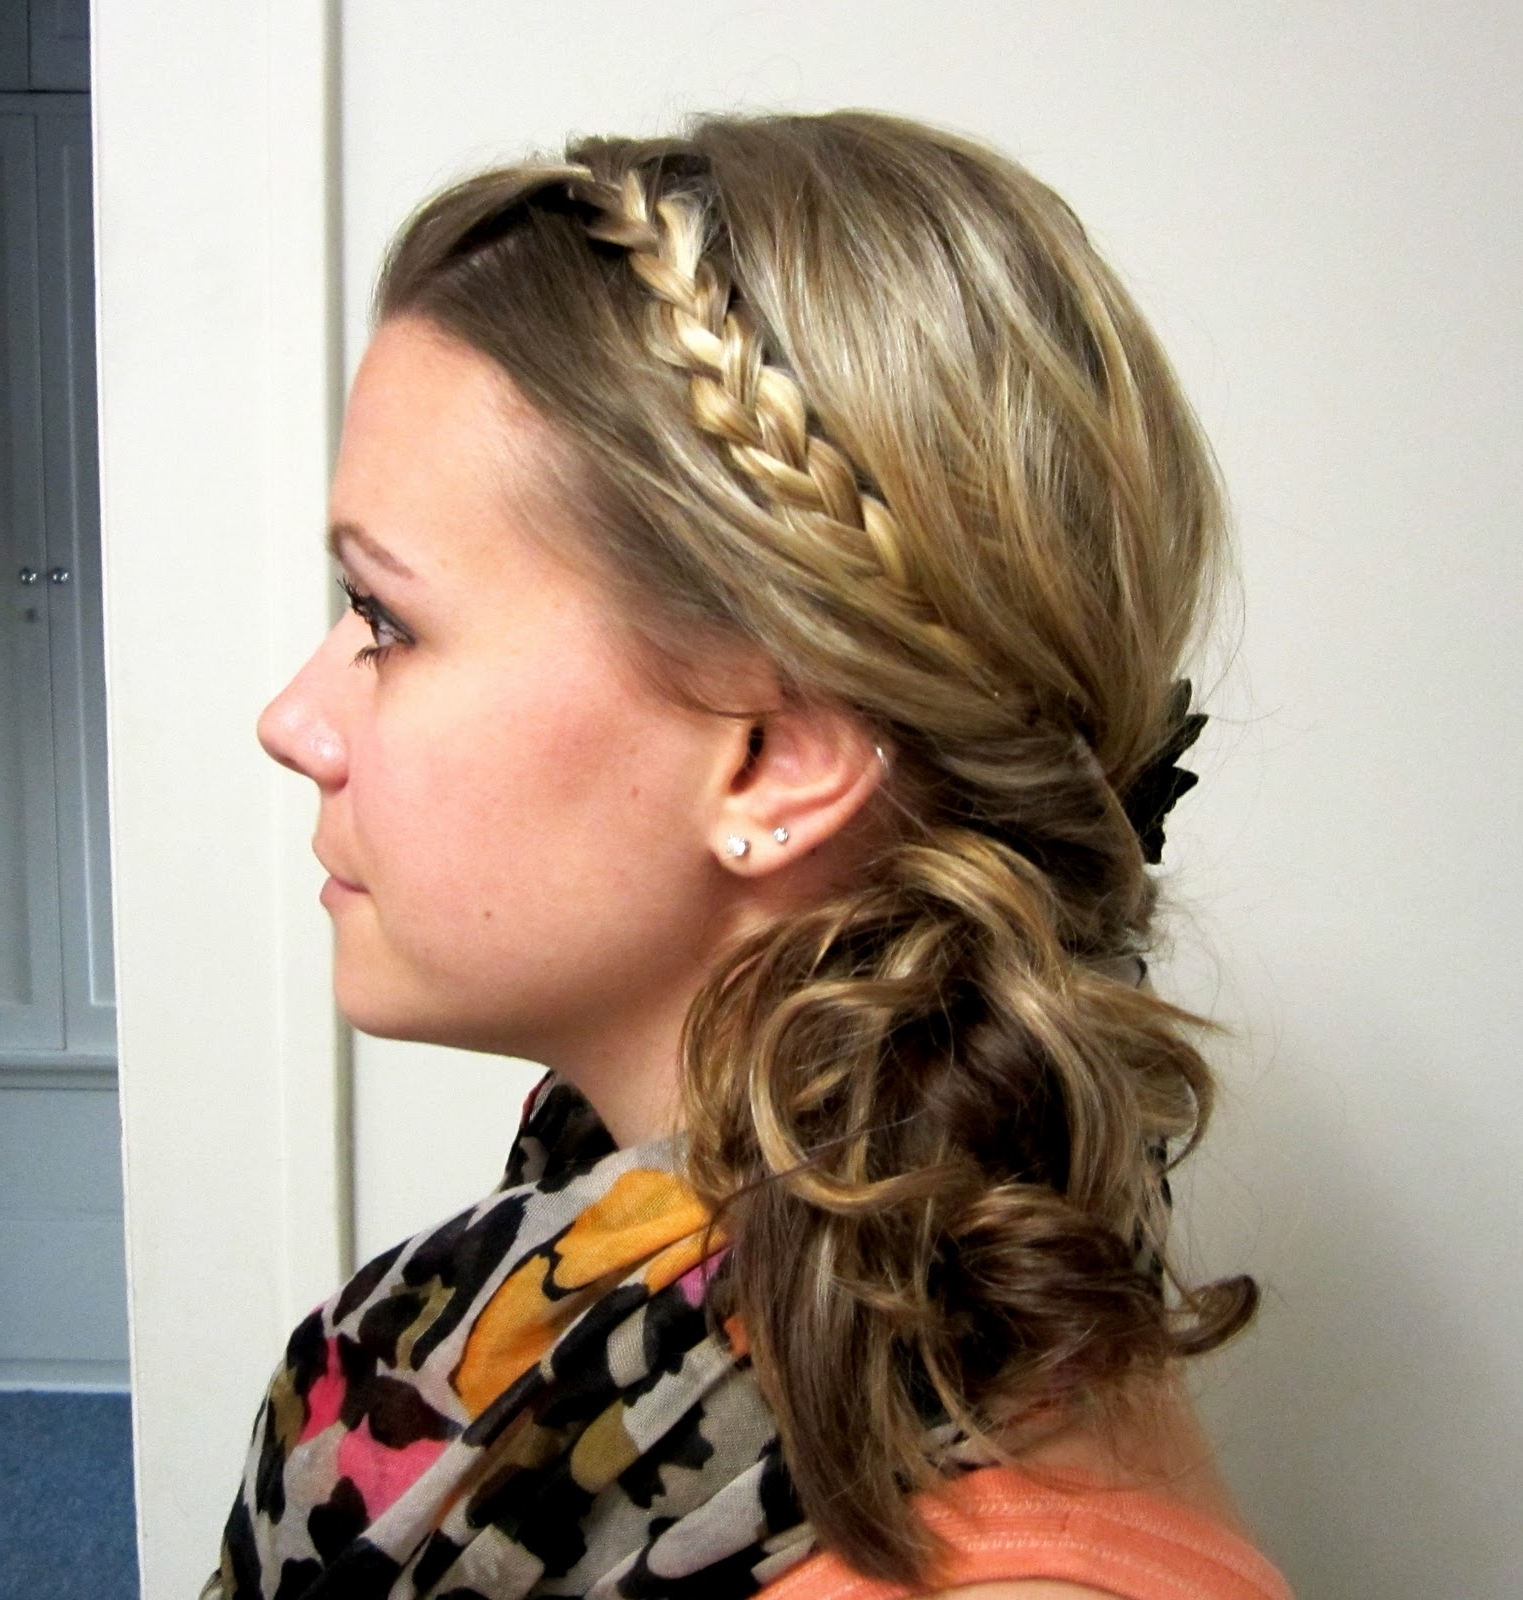 Bye Bye Beehive │ A Hairstyle Blog: Braided Side Topsy Tail (View 15 of 20)